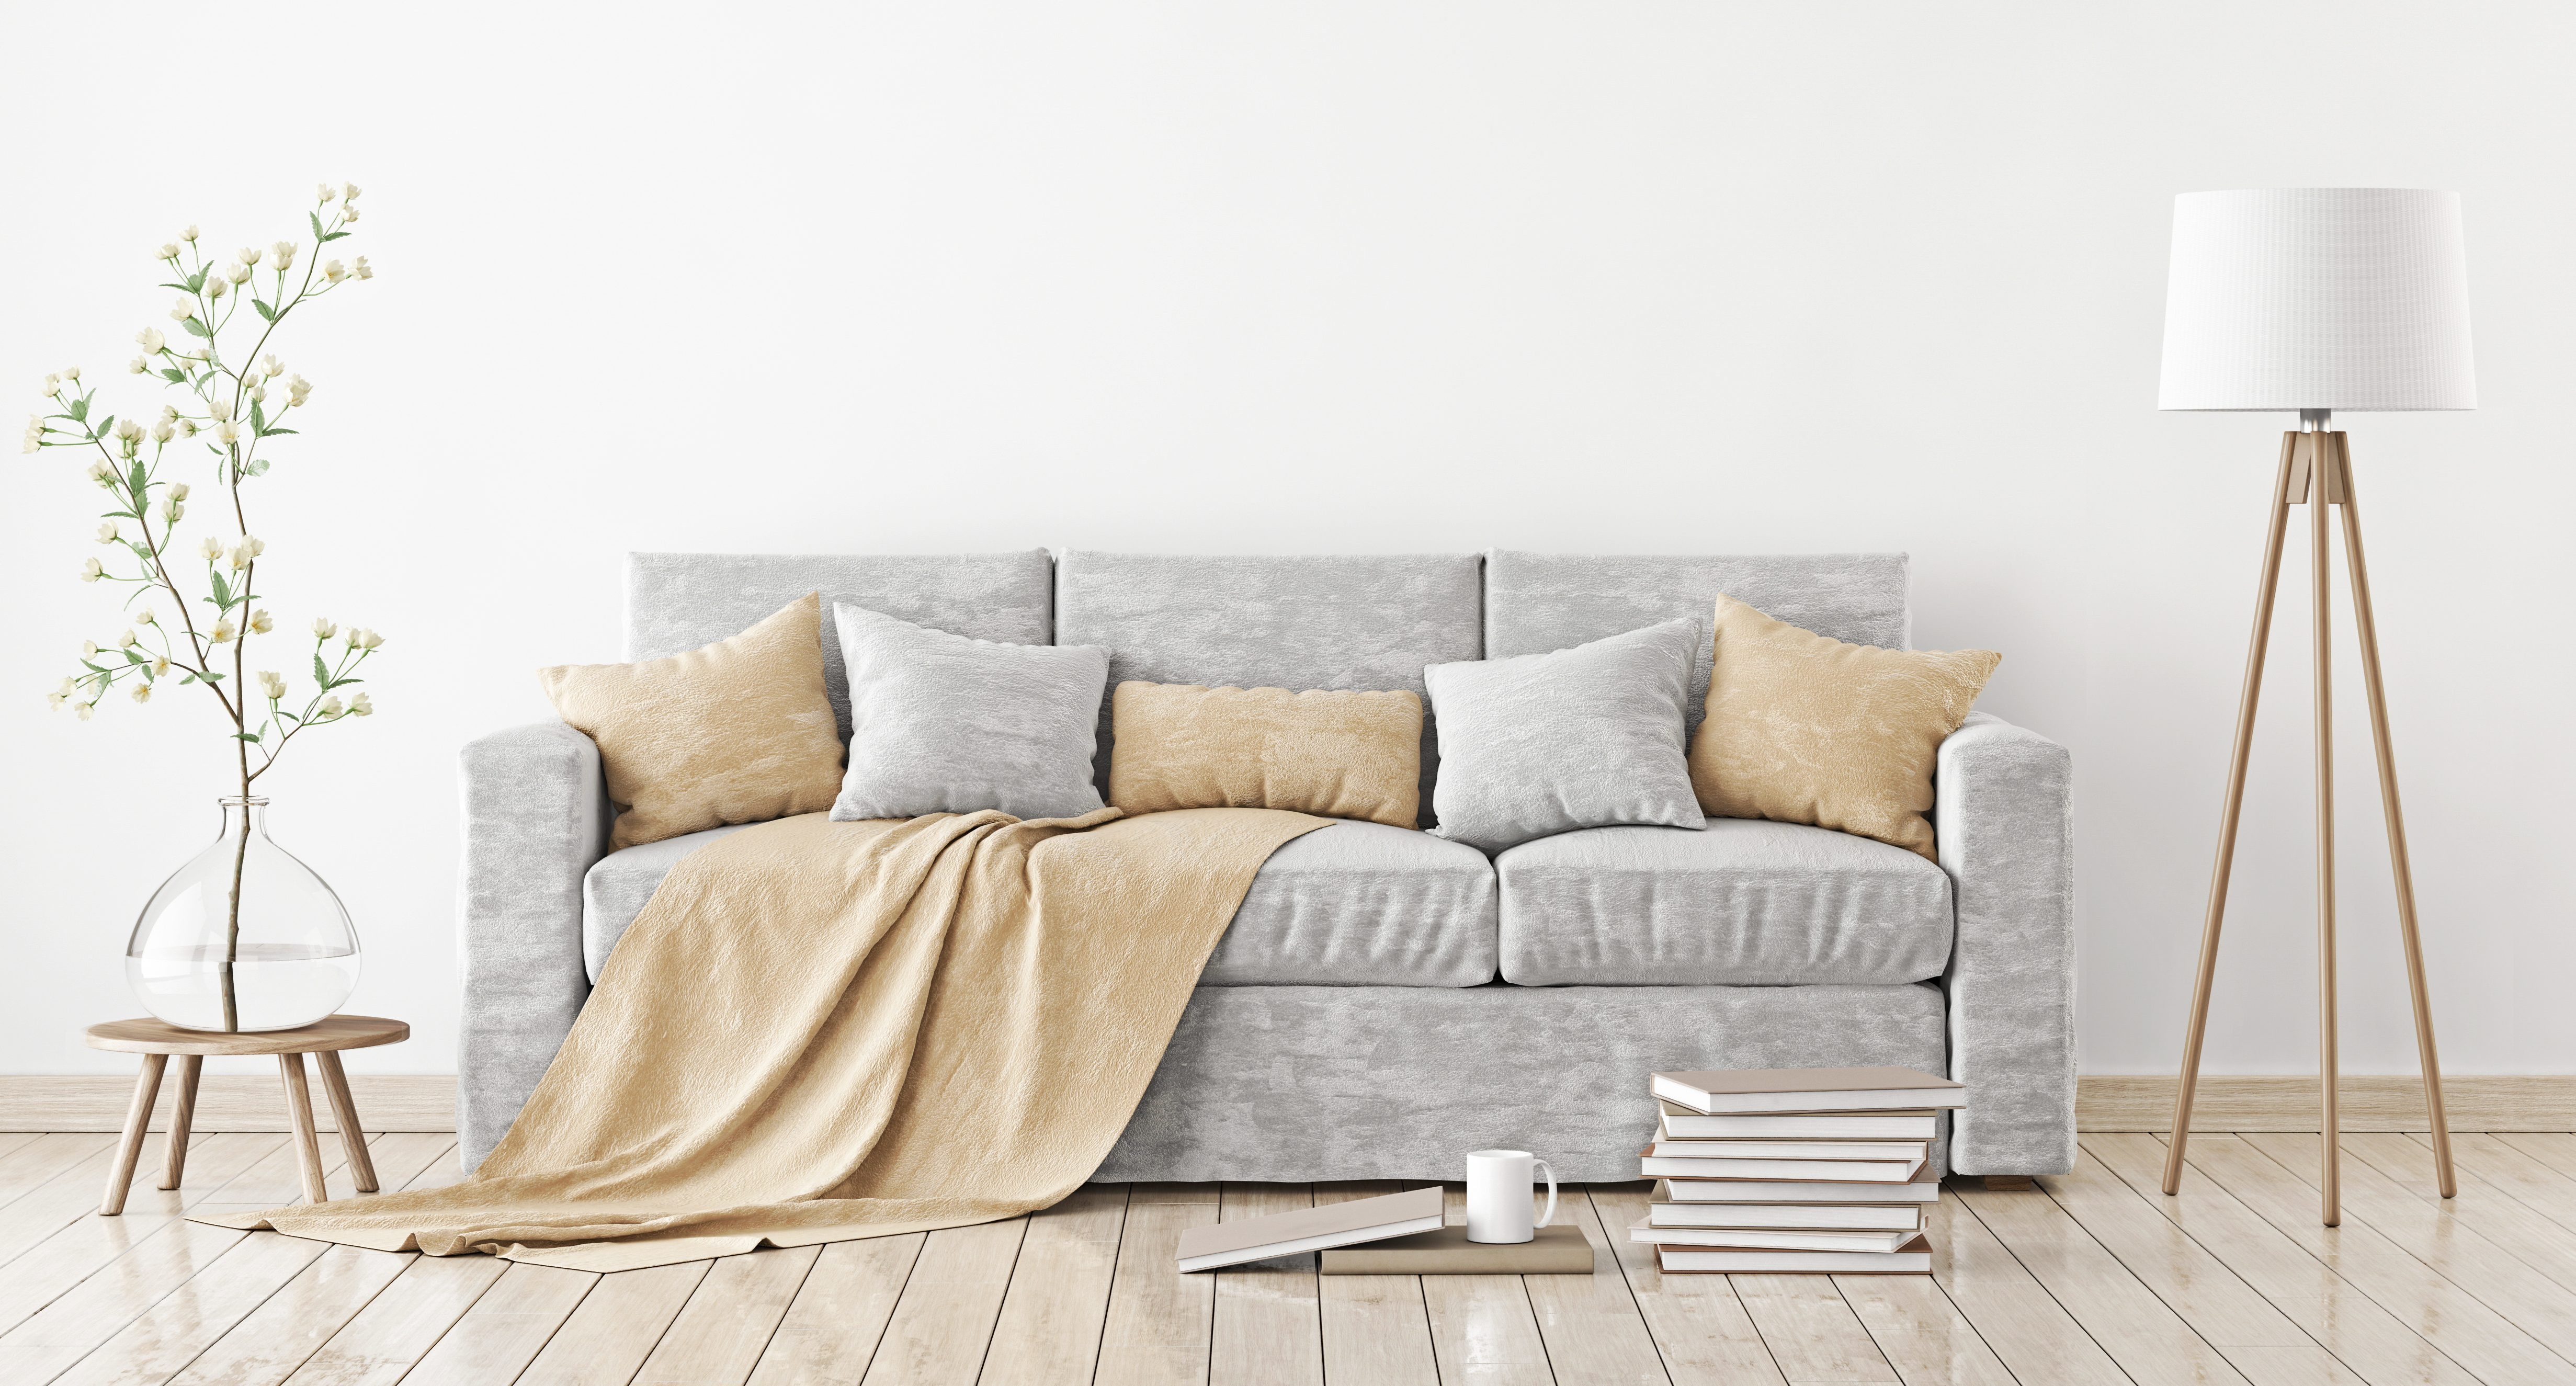 Modern Bed Empty White Wall Mockup With Sofa, Pillows, Plaid And Lamp